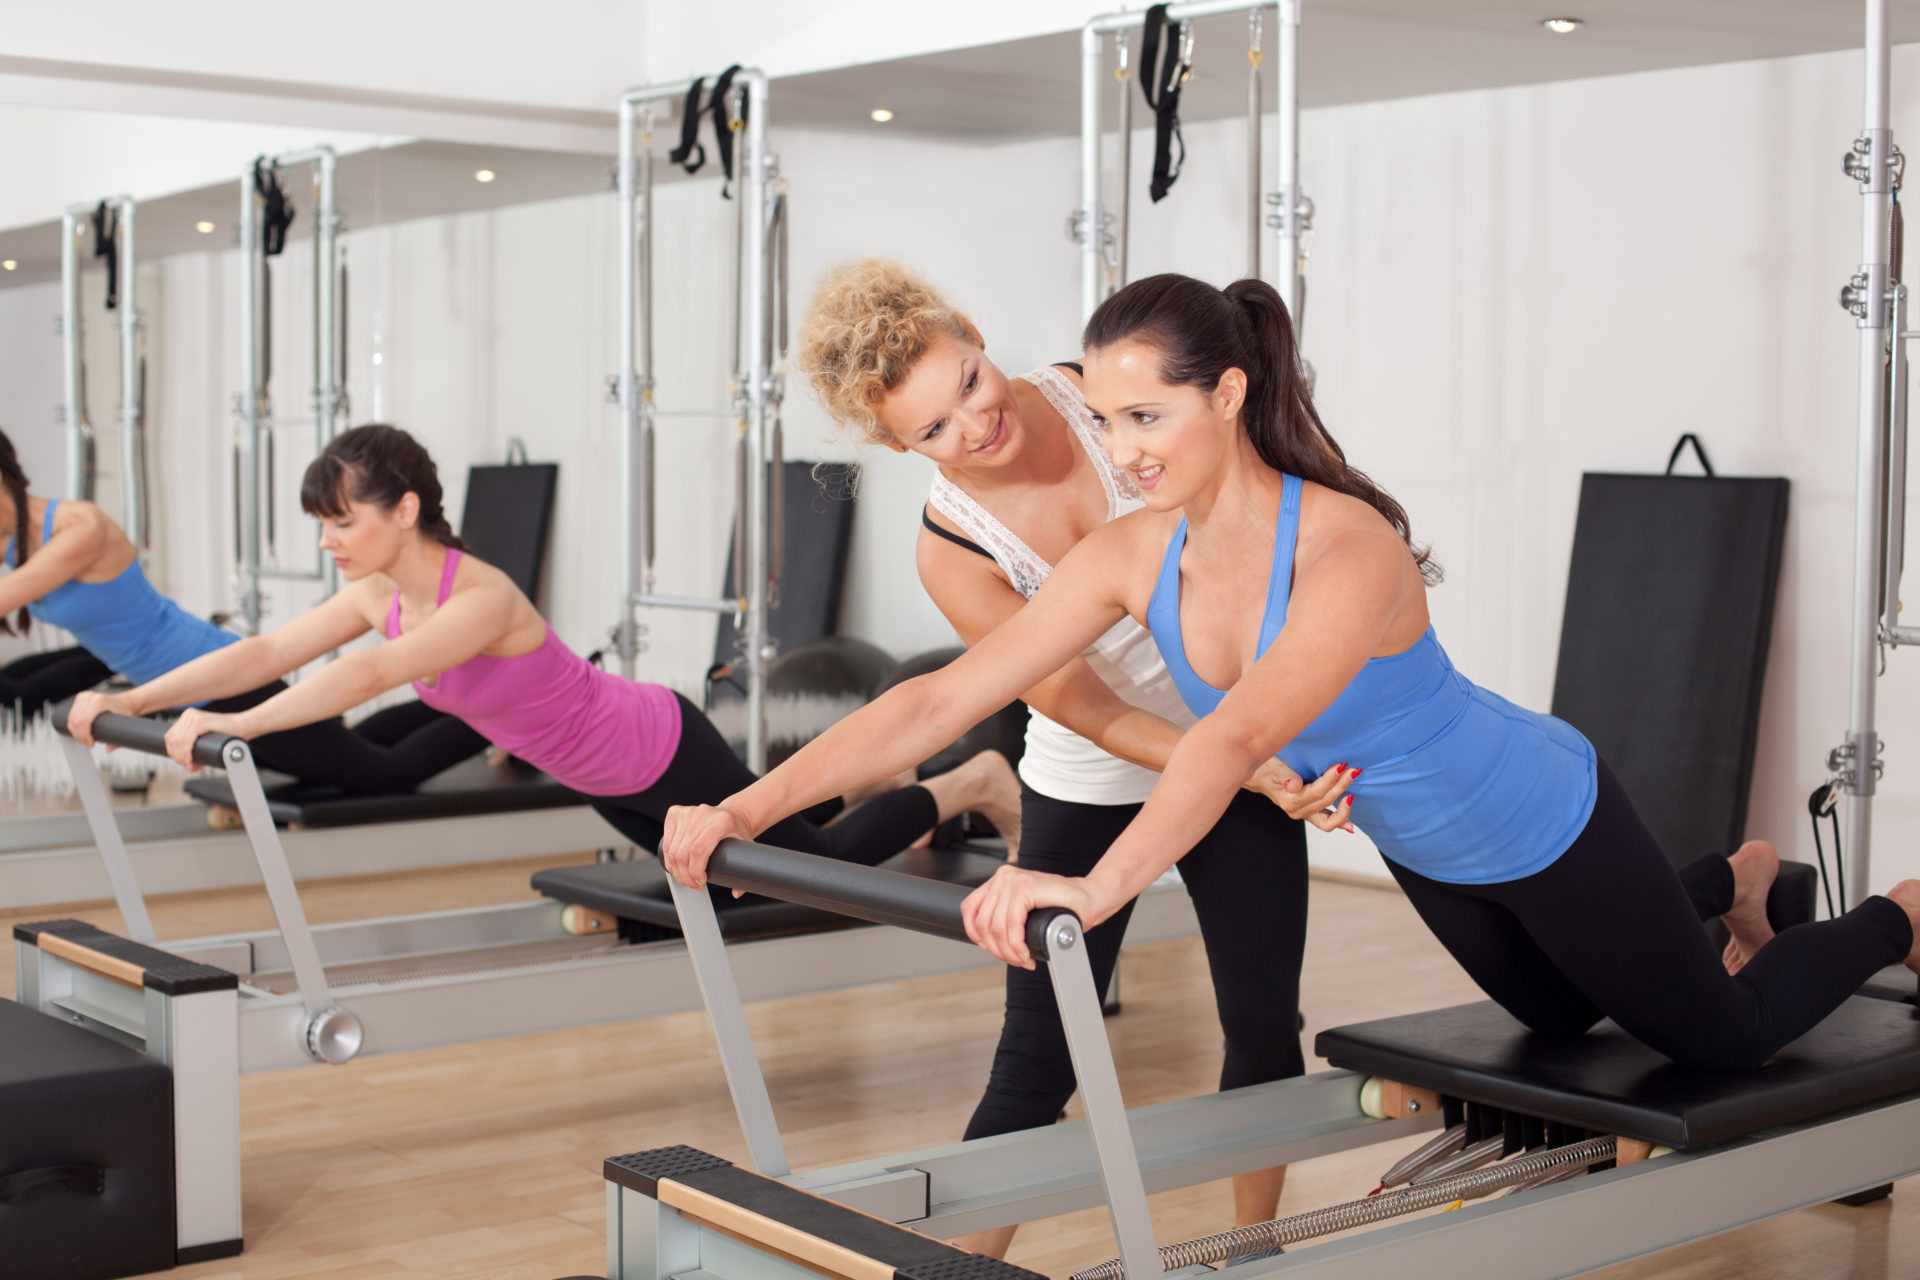 What Does It Take To Be A Reformer Pilates Instructor?